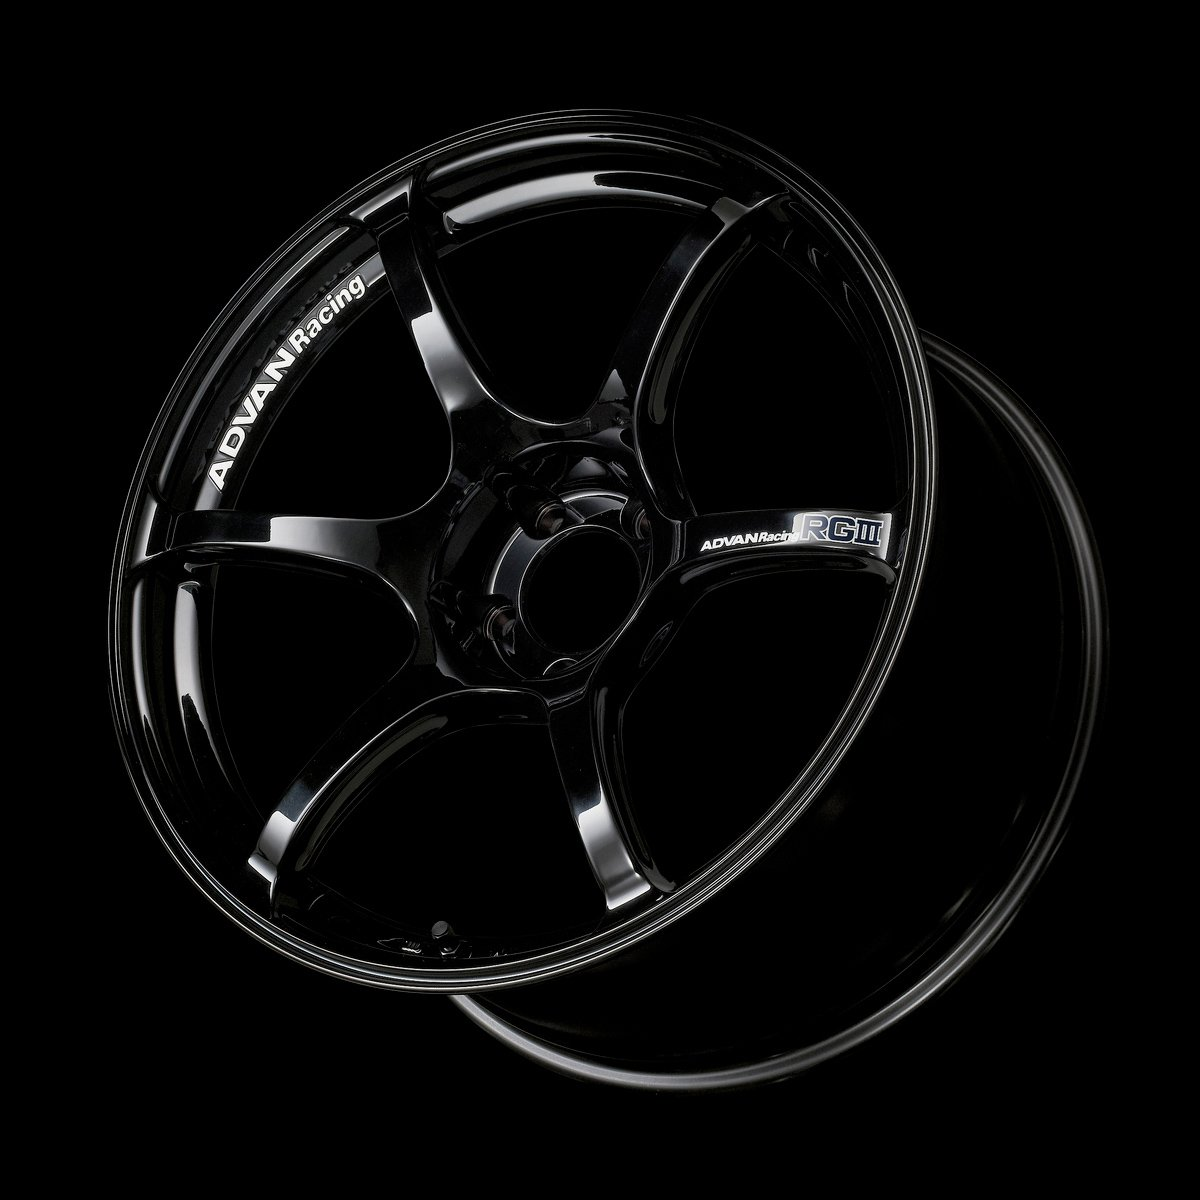 Demupai Car Wheels Sticker Decal for Advan RG2 Black RGII